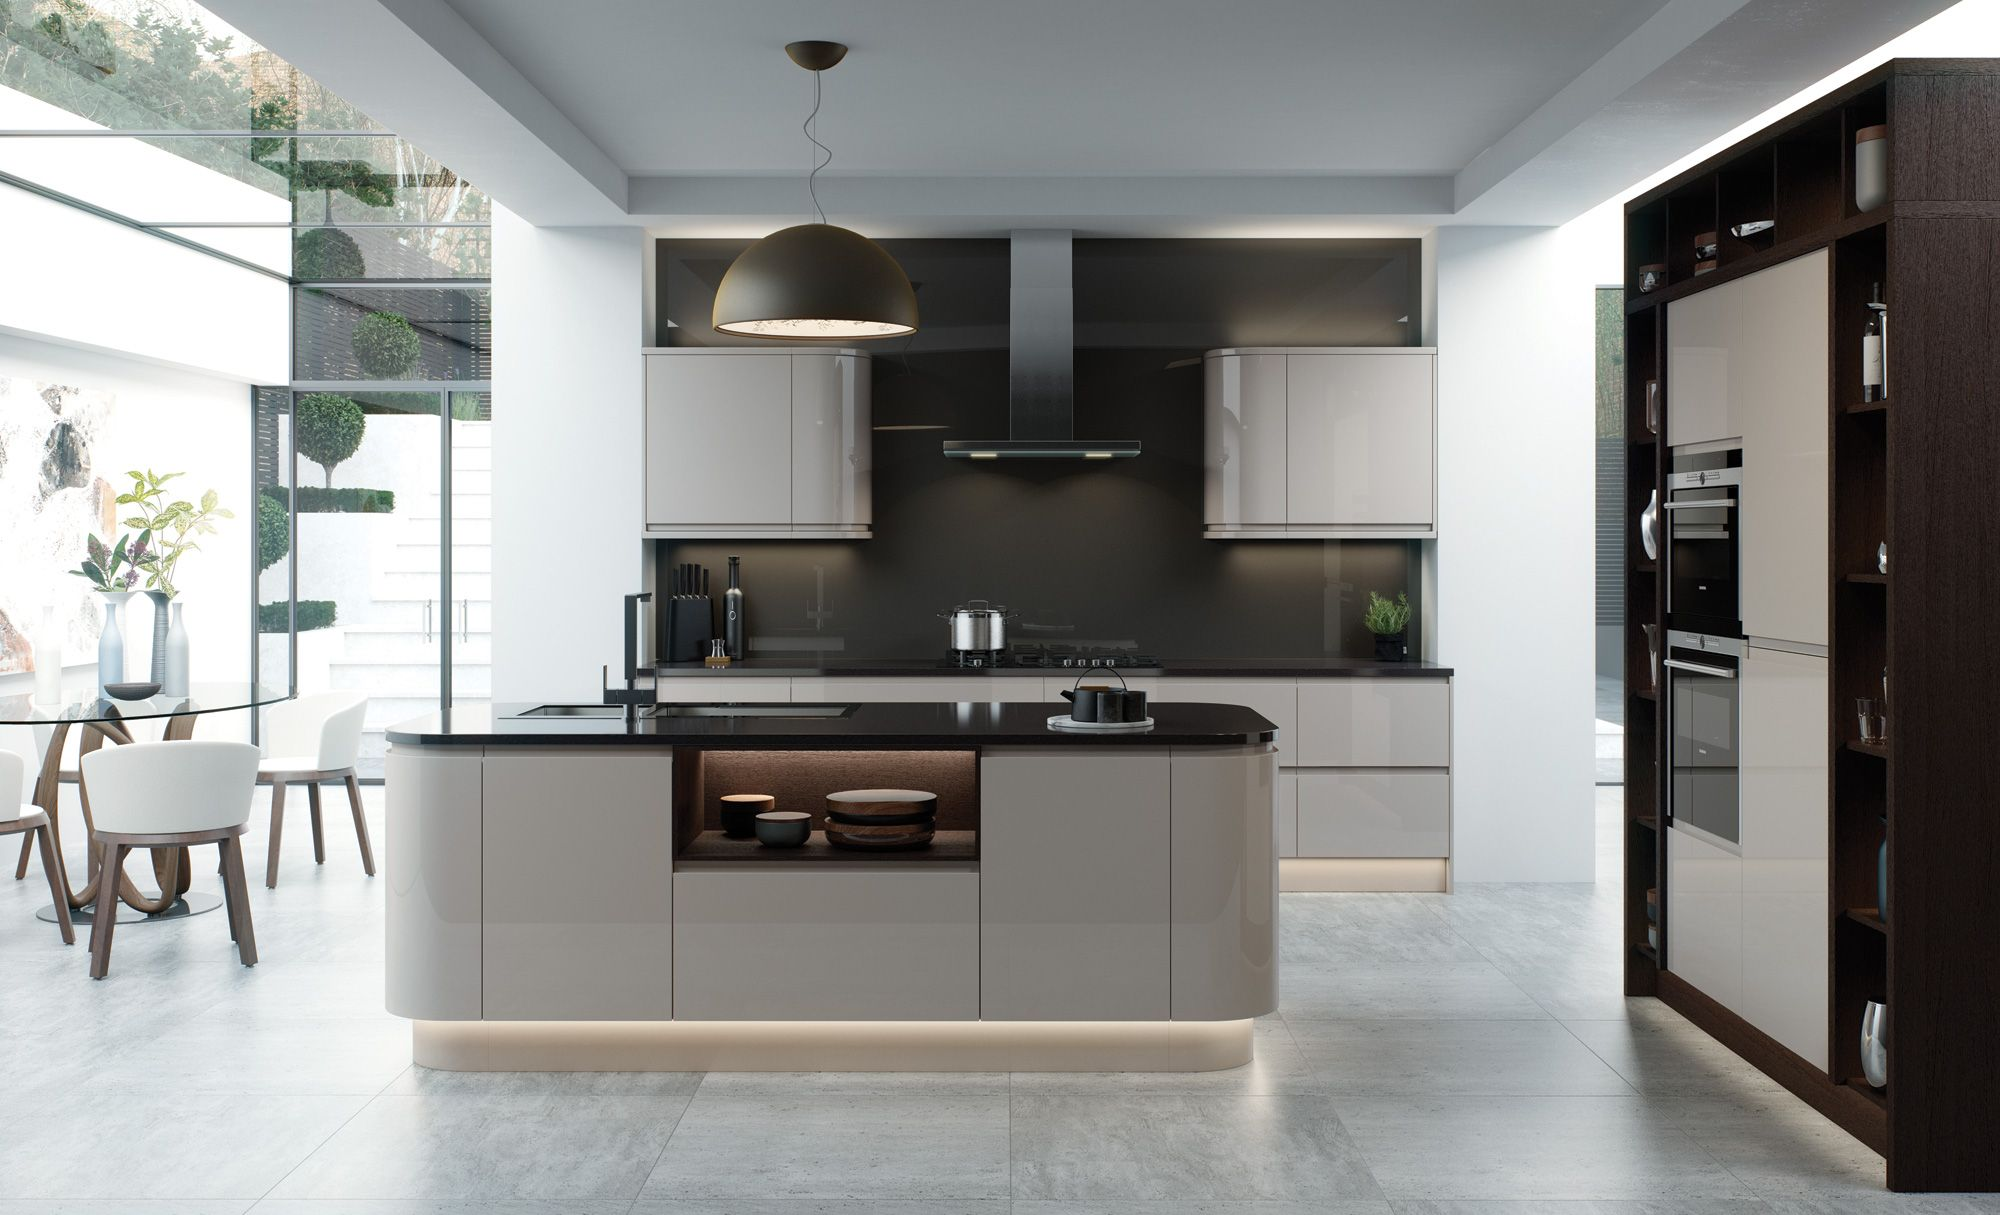 Grey kitchen modern kitchen london by lwk kitchens london - Modern Contemporary Strada Gloss Cashmere Kitchen